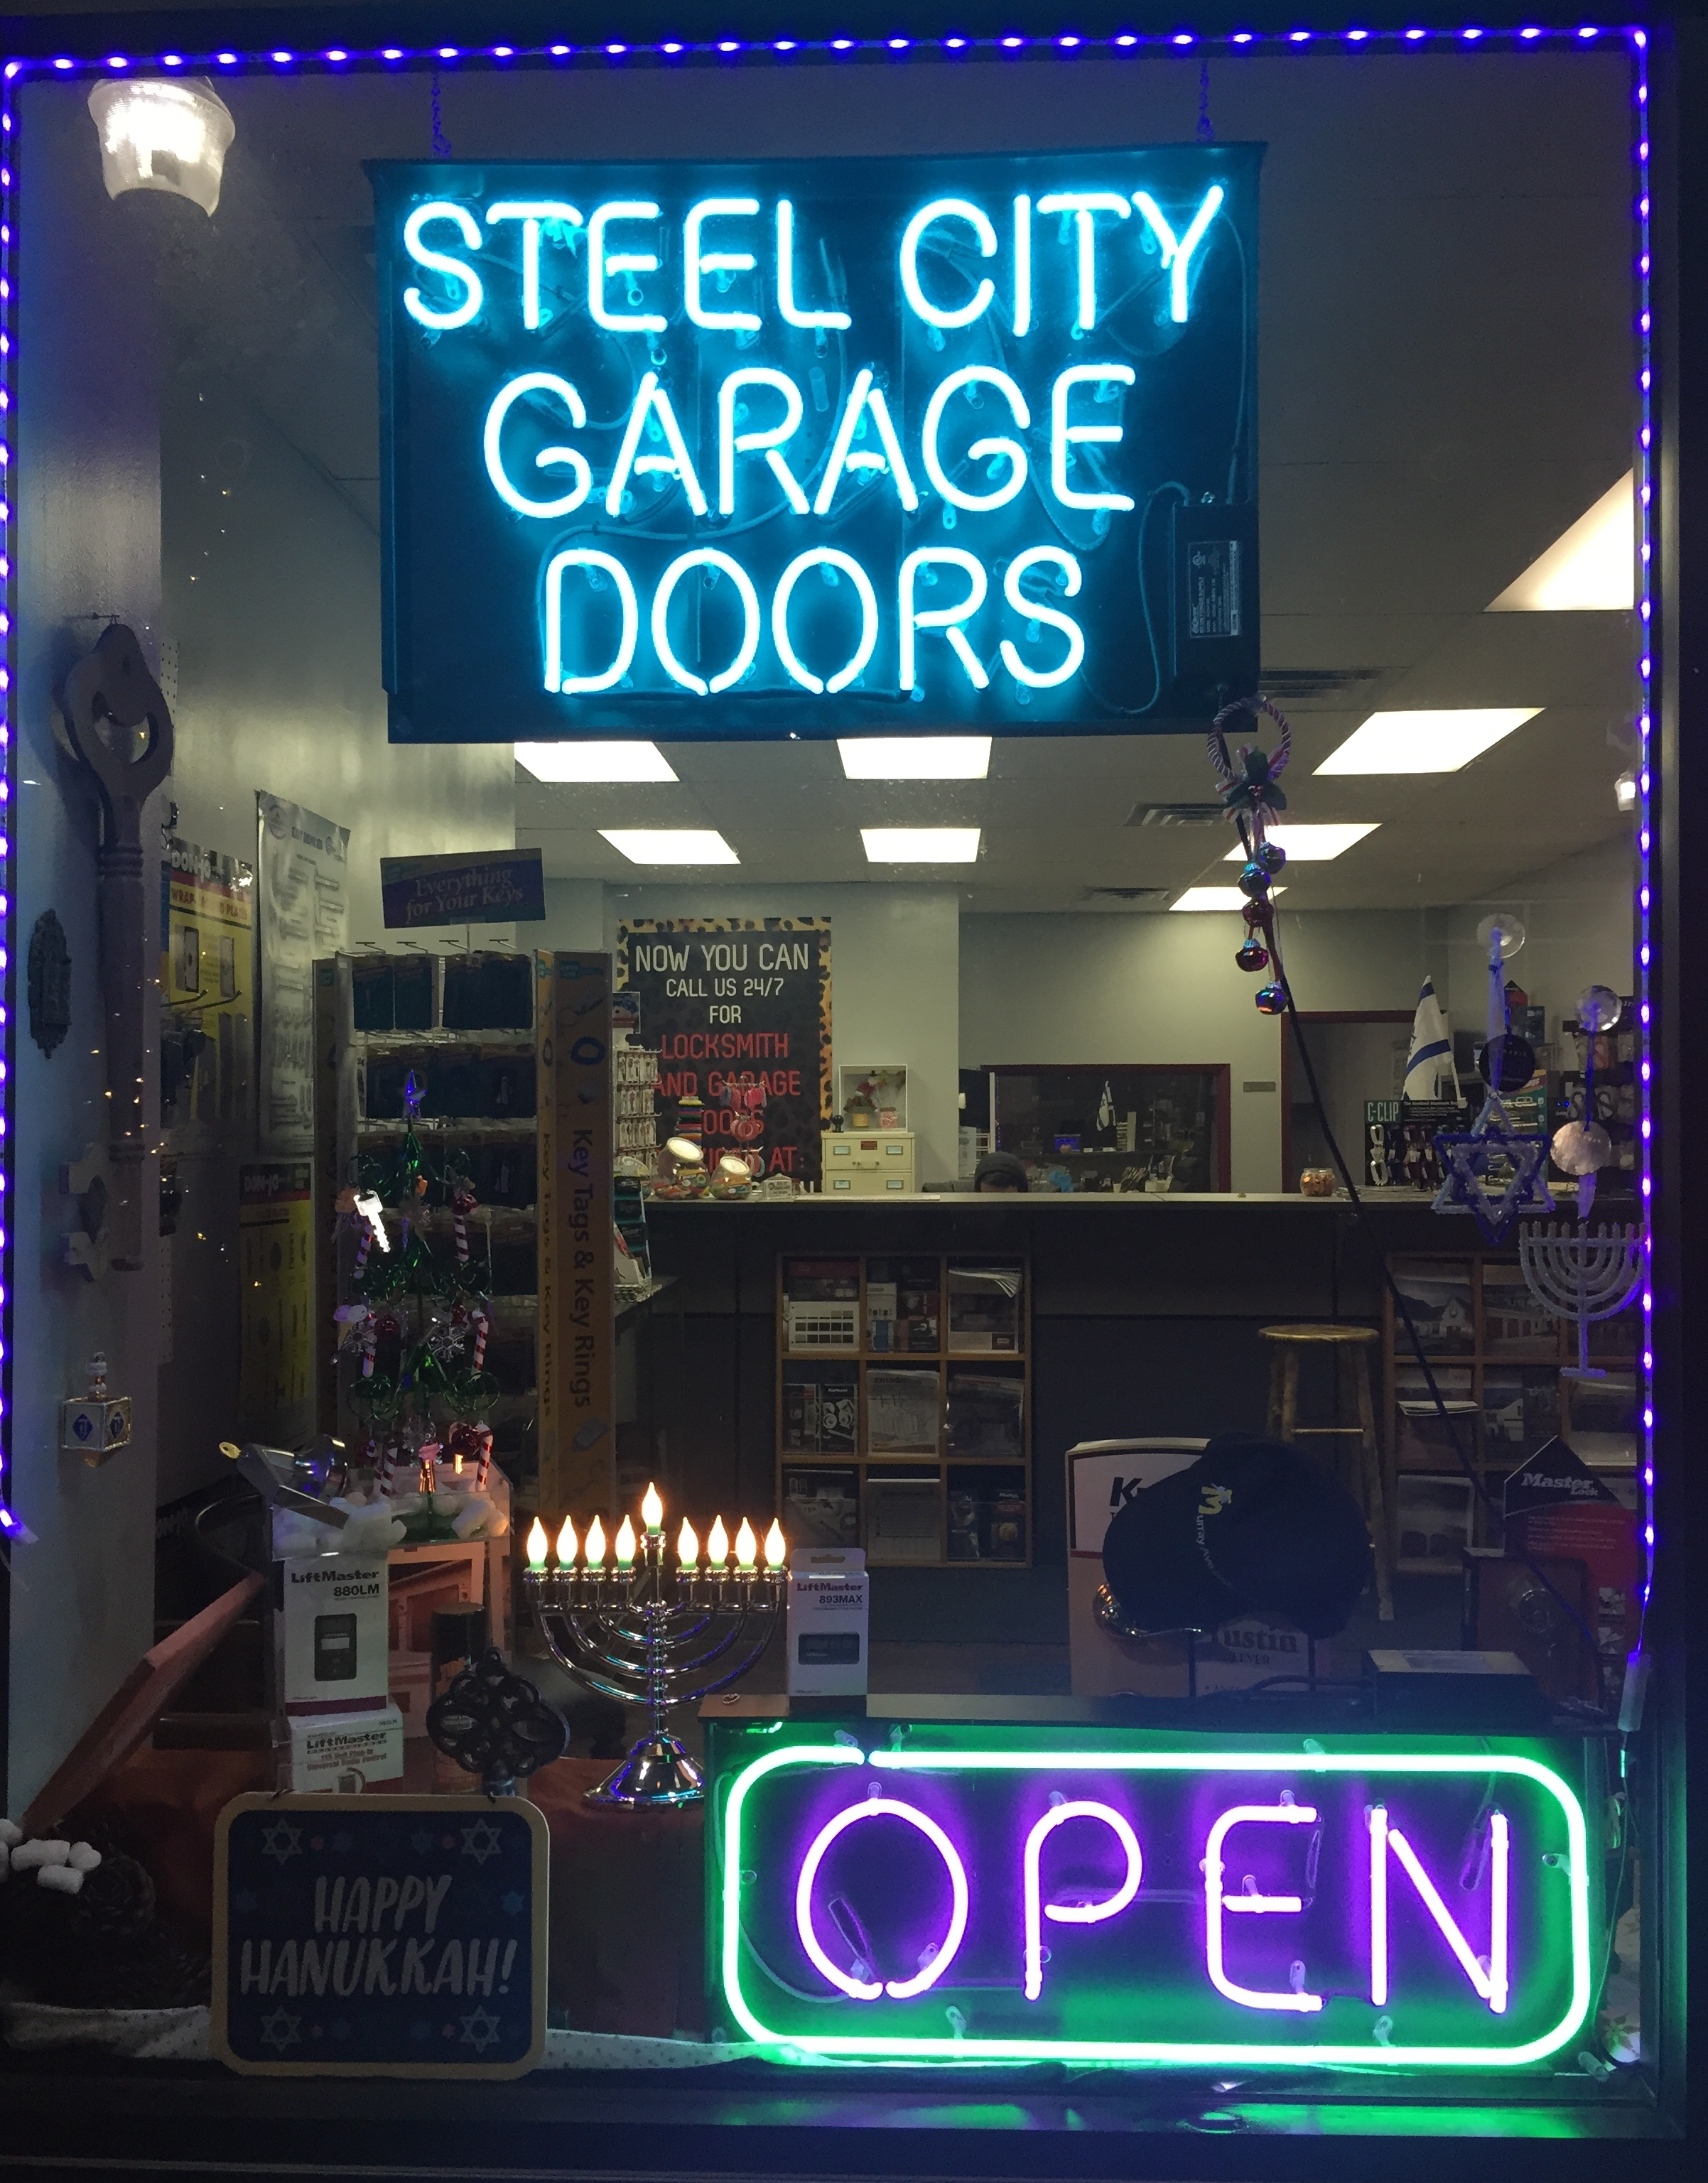 Locksmith in squirrel hill locksmith in pittsburgh pa 412 422 2004 steel city garage doors our new window decoration for the coming holiday rubansaba